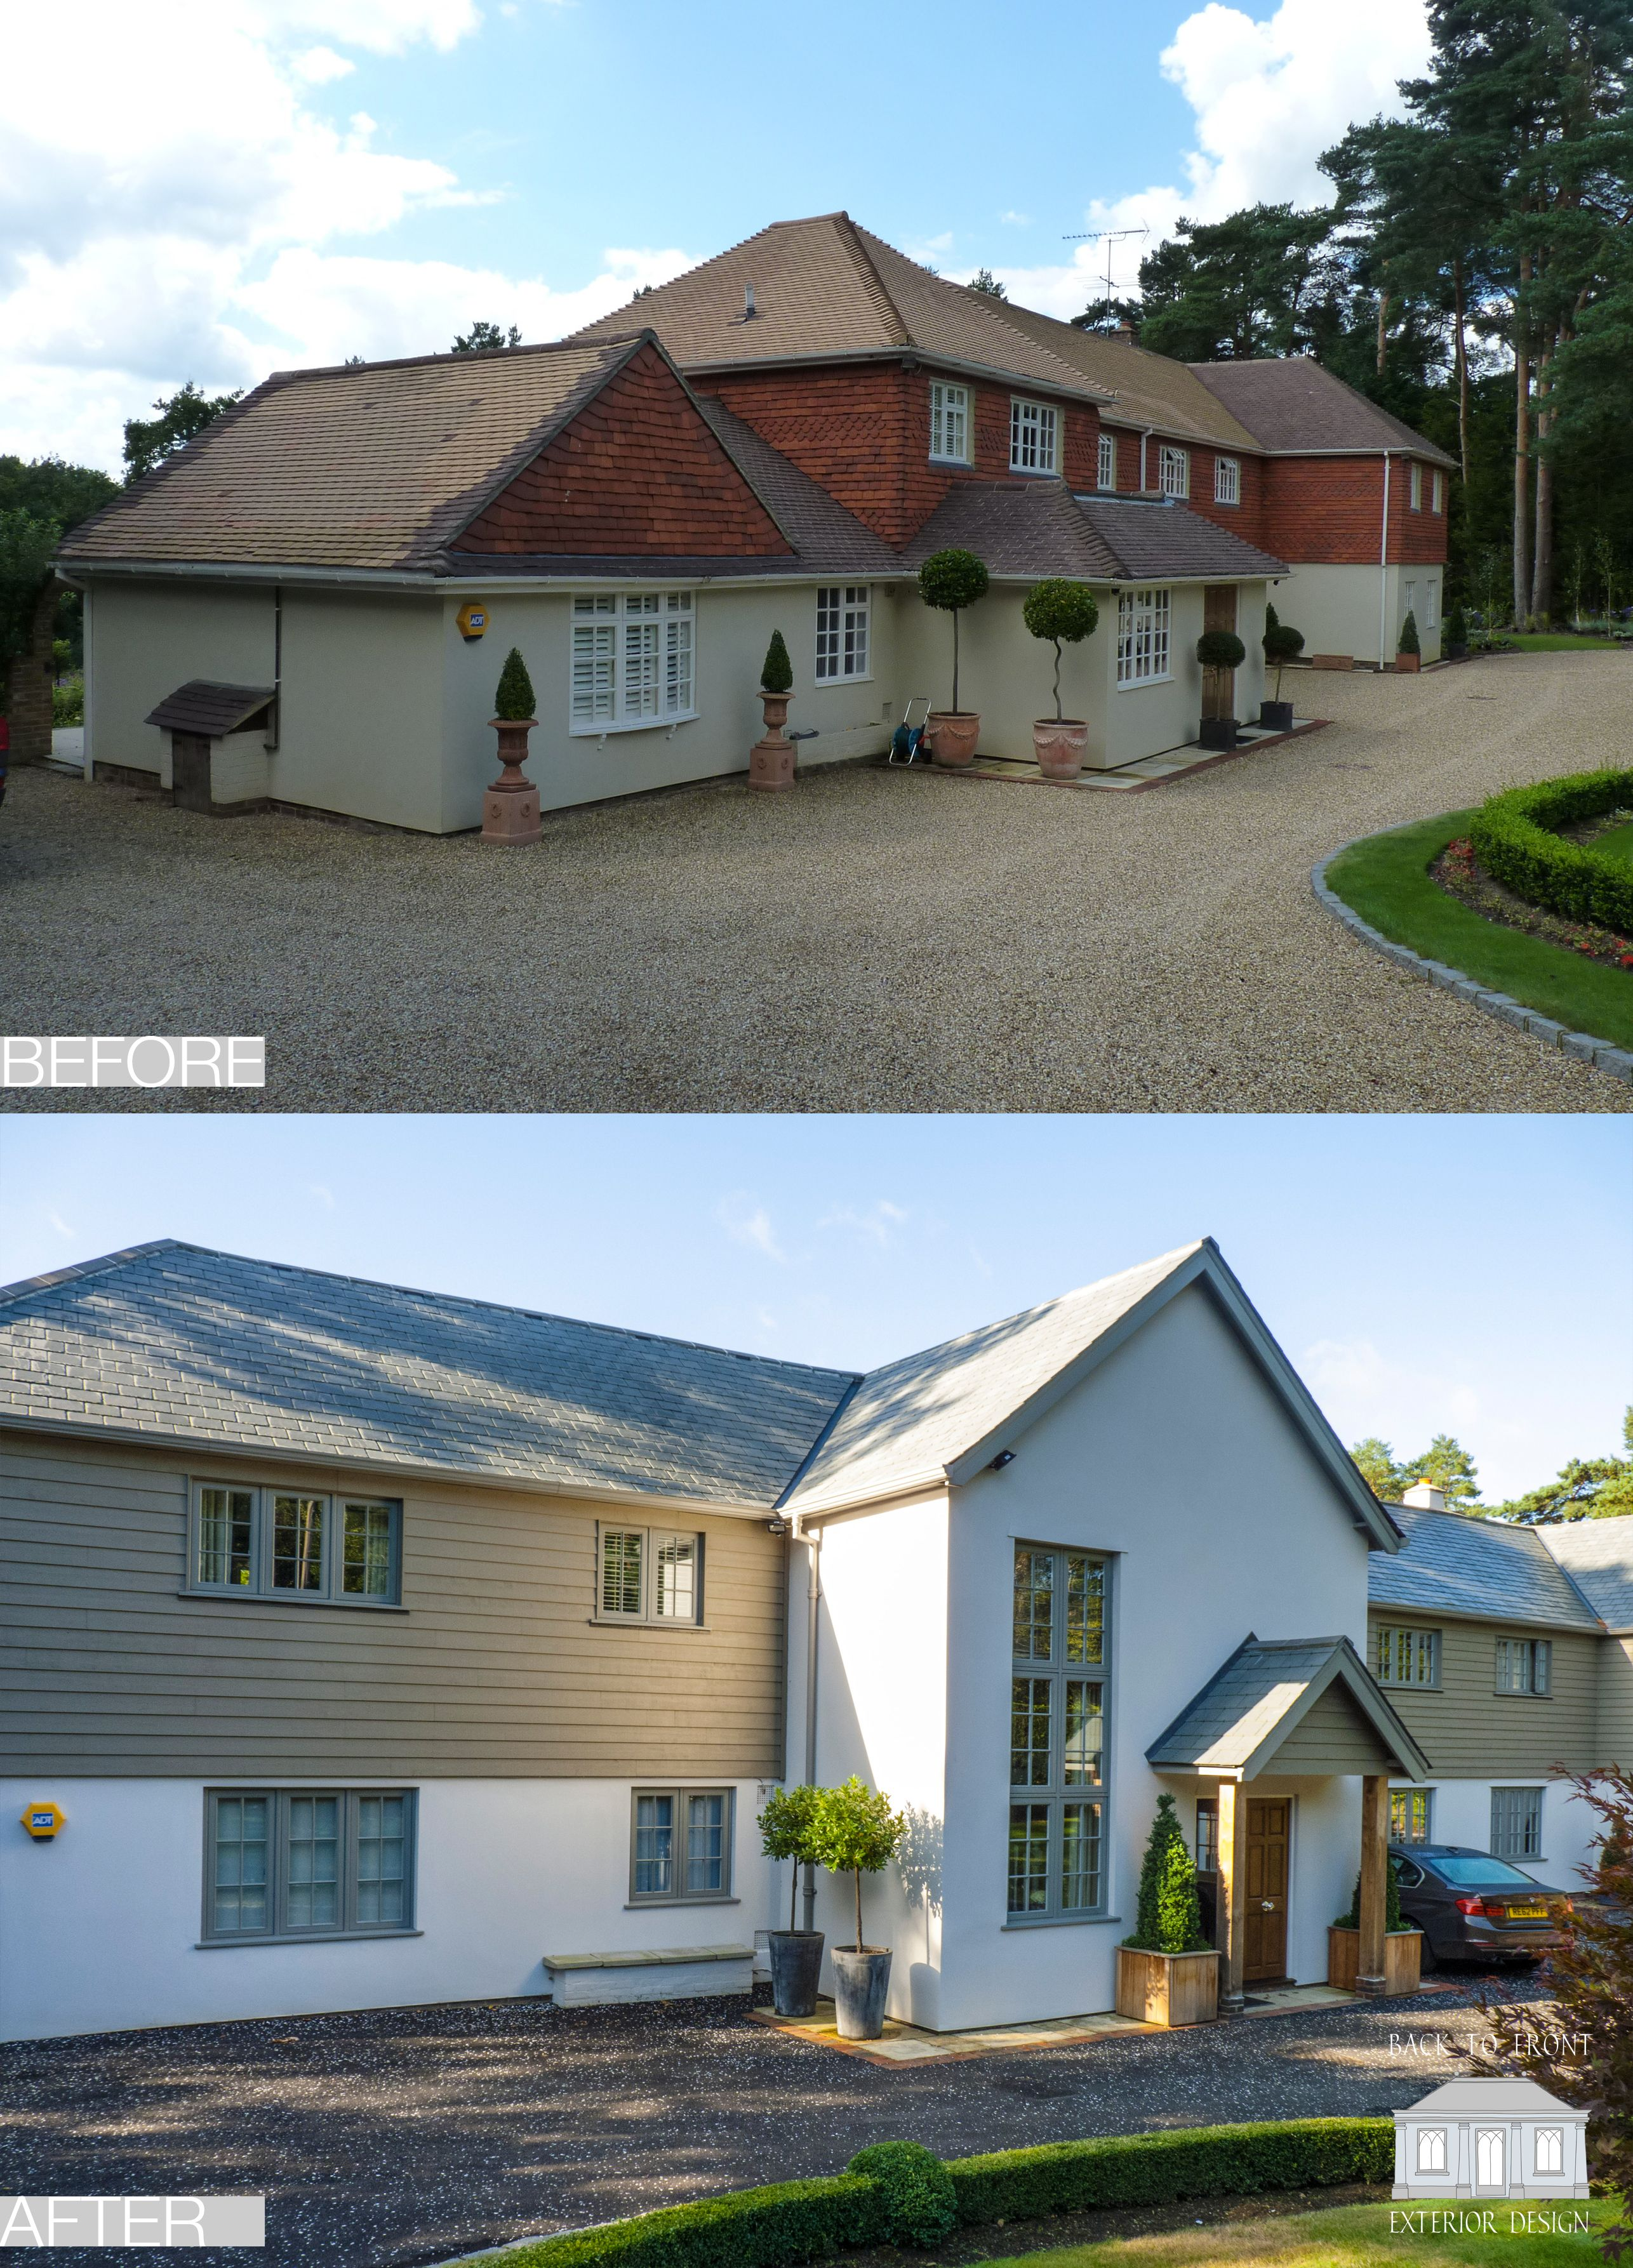 Captivating How To Change The Facade Of Your Home. Exterior Transformation By Back To  Front Exterior